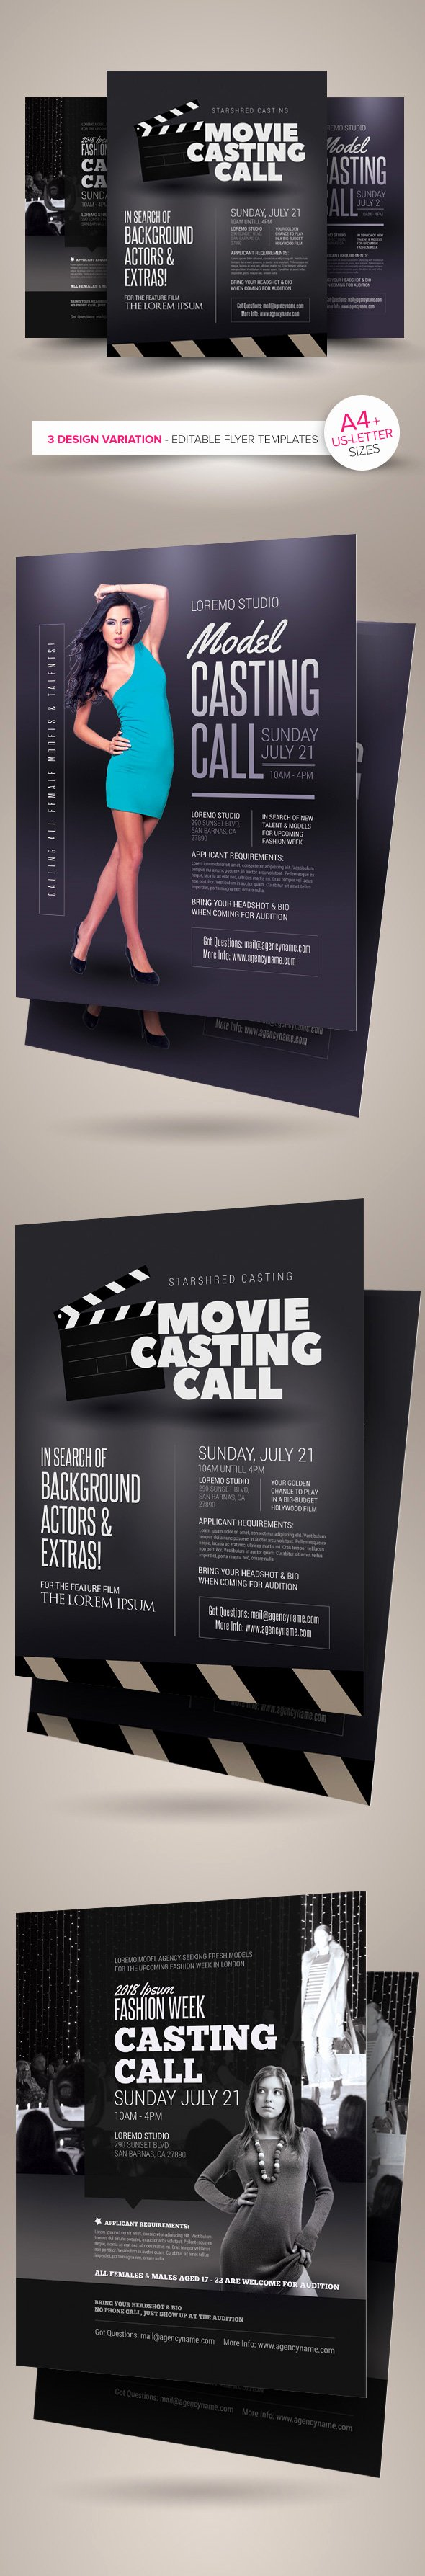 Casting Call Flyer Template Luxury Casting Call Flyer Templates On Behance